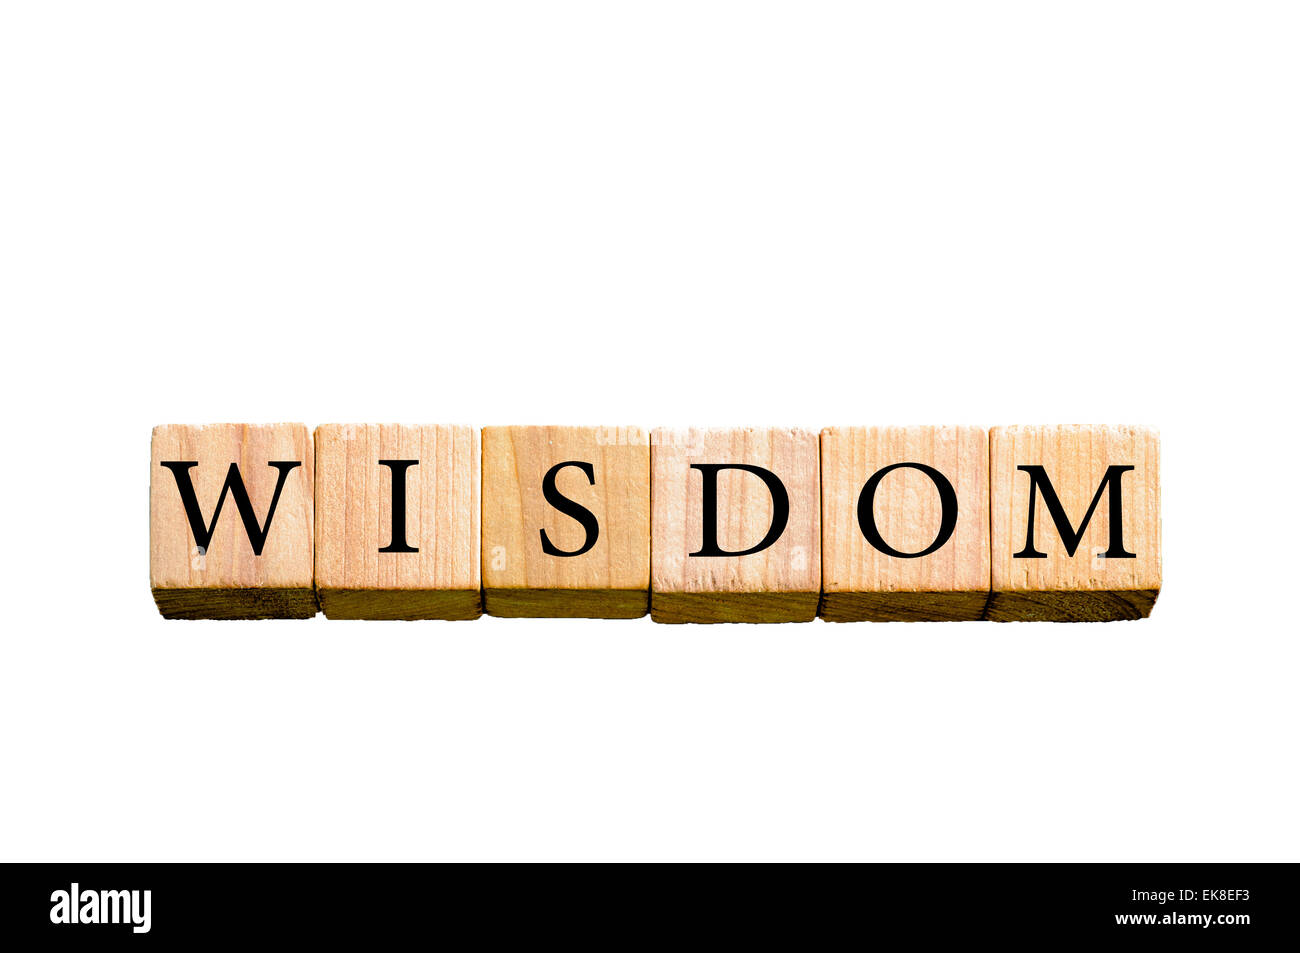 Word WISDOM. Wooden small cubes with letters isolated on white background with copy space available. Concept image. - Stock Image